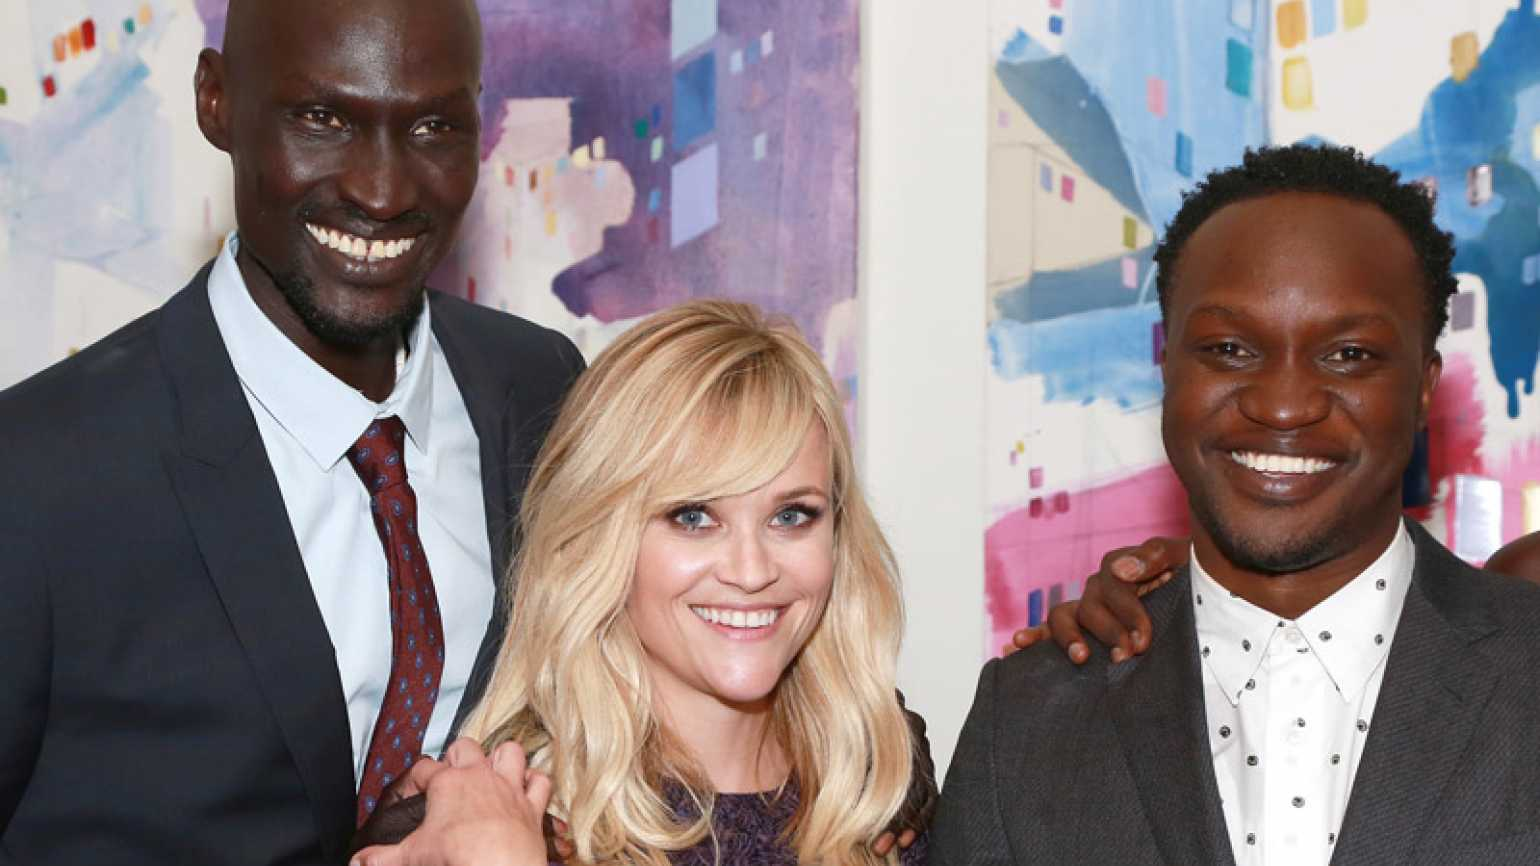 Ger Dunay, Reese Witherspoon and Arnold Oceng, stars of The Good Lie